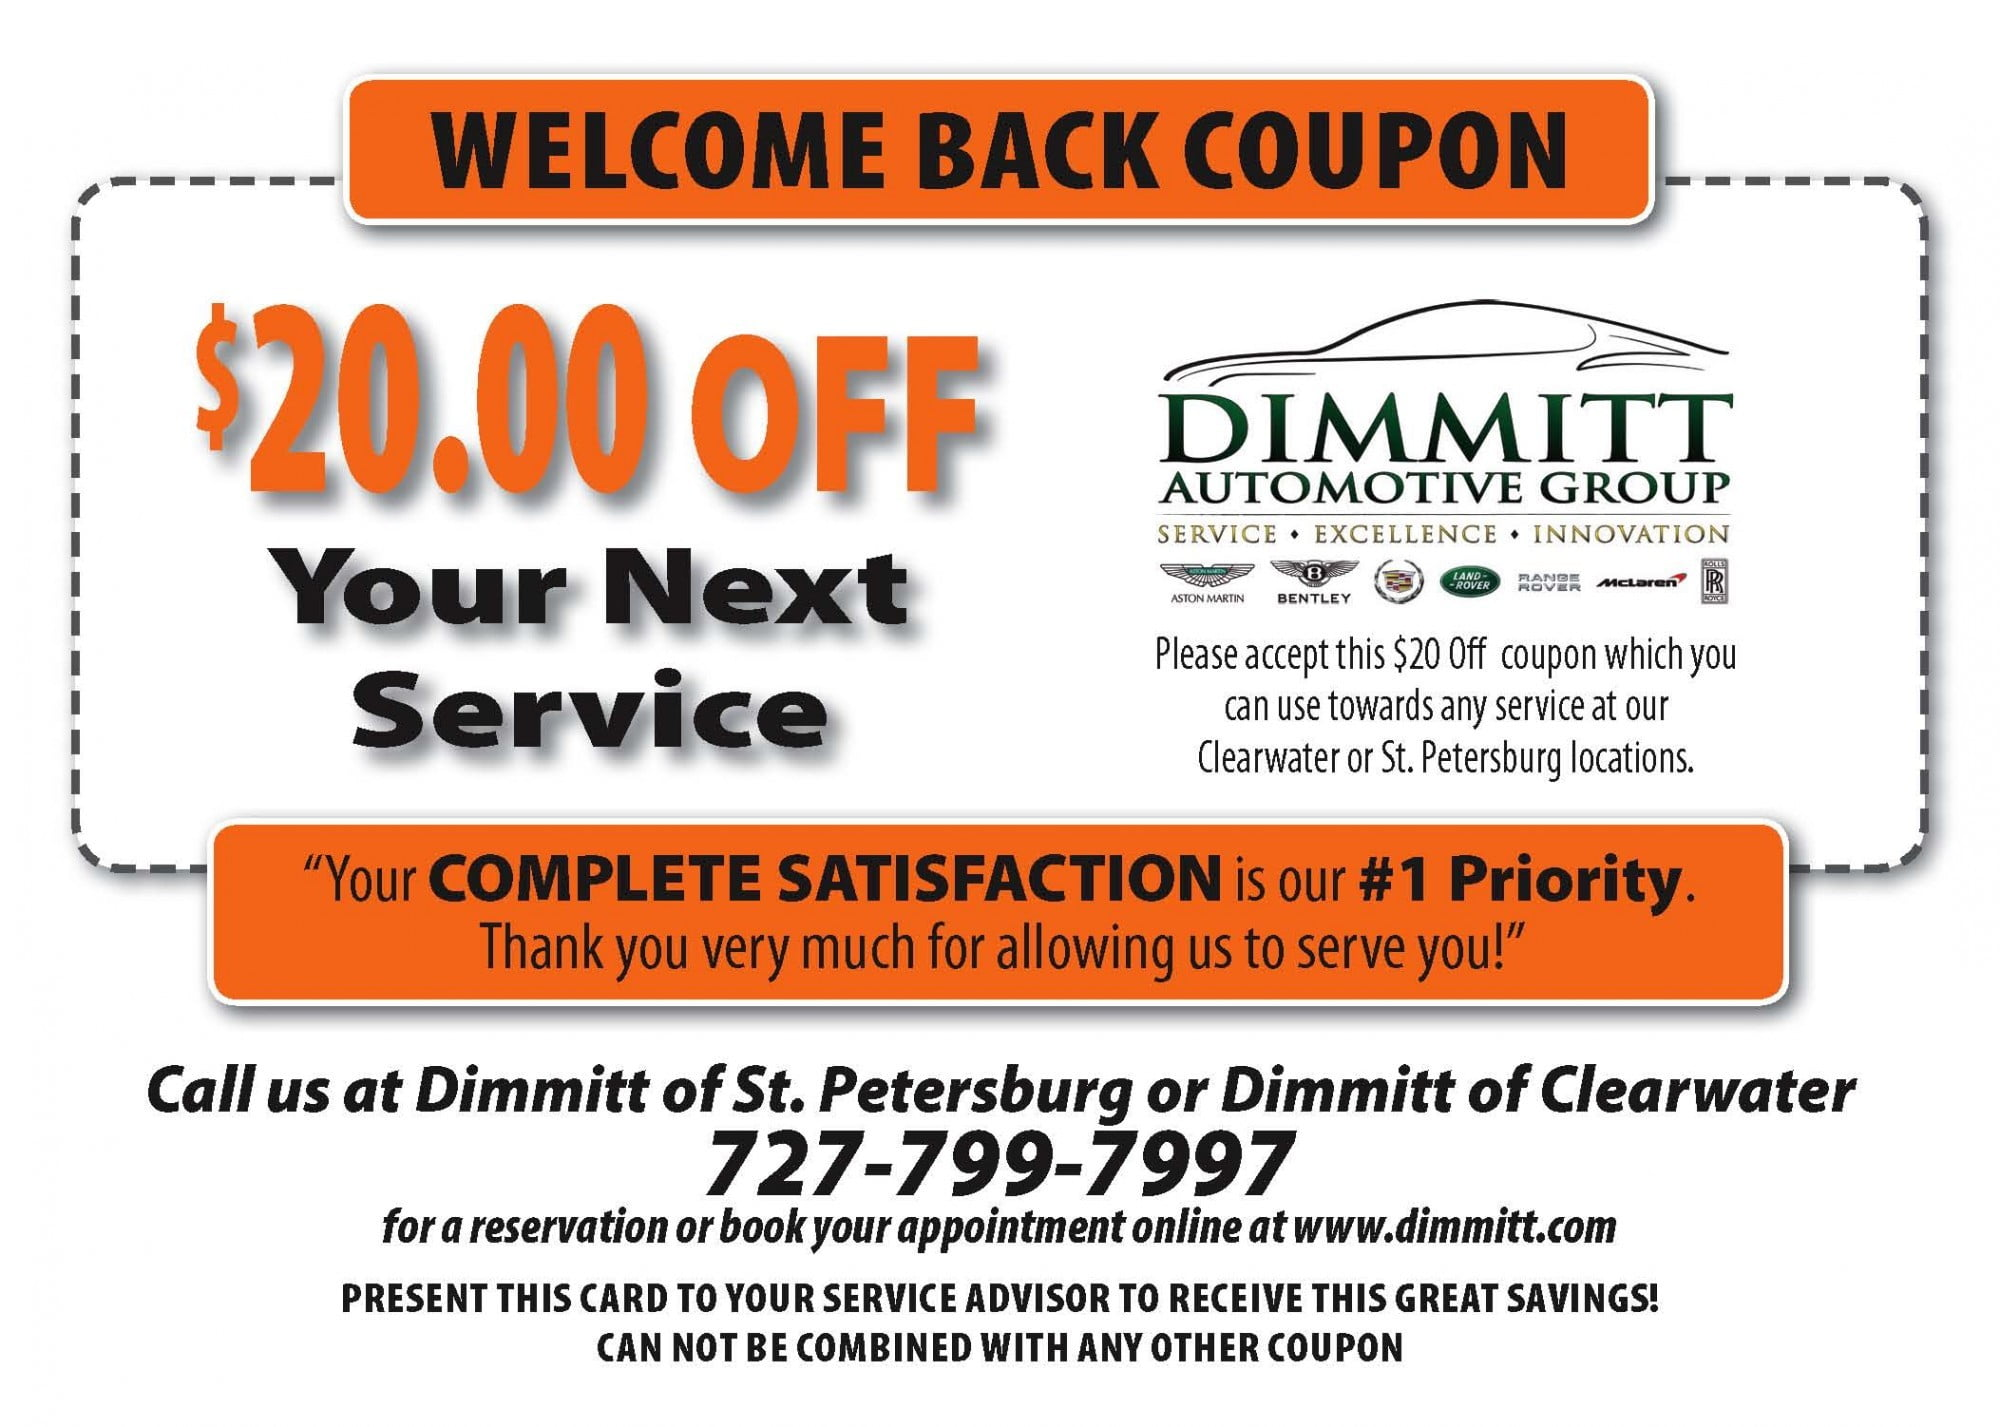 Auto dealer service postcard sample 3 wilson printing usa wilson post a reply cancel reply thecheapjerseys Gallery